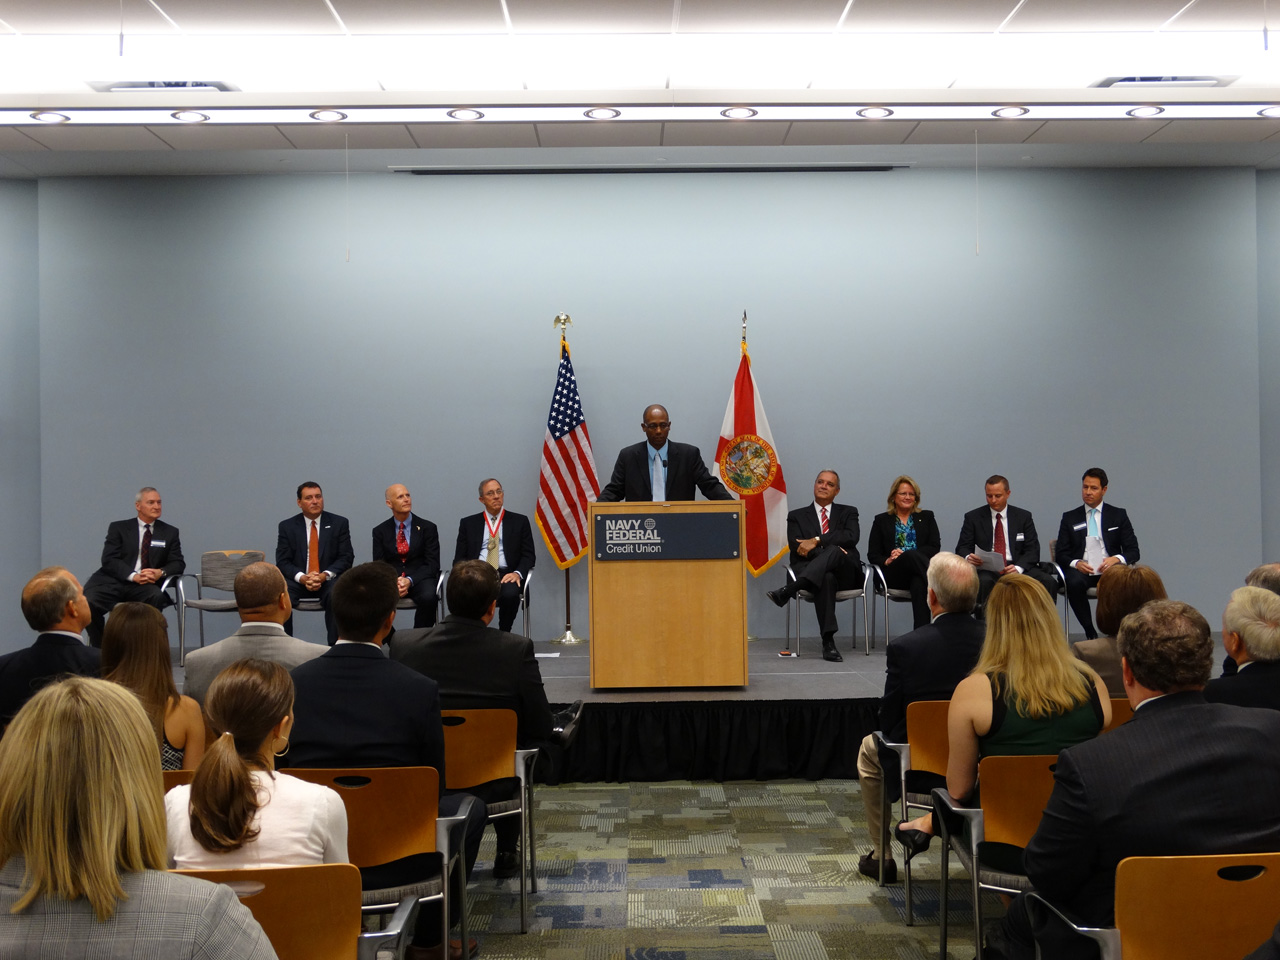 CommissionerMayspeaksattheannouncementceremonyofNavyFederalCreditUnioncomingtoPensacola